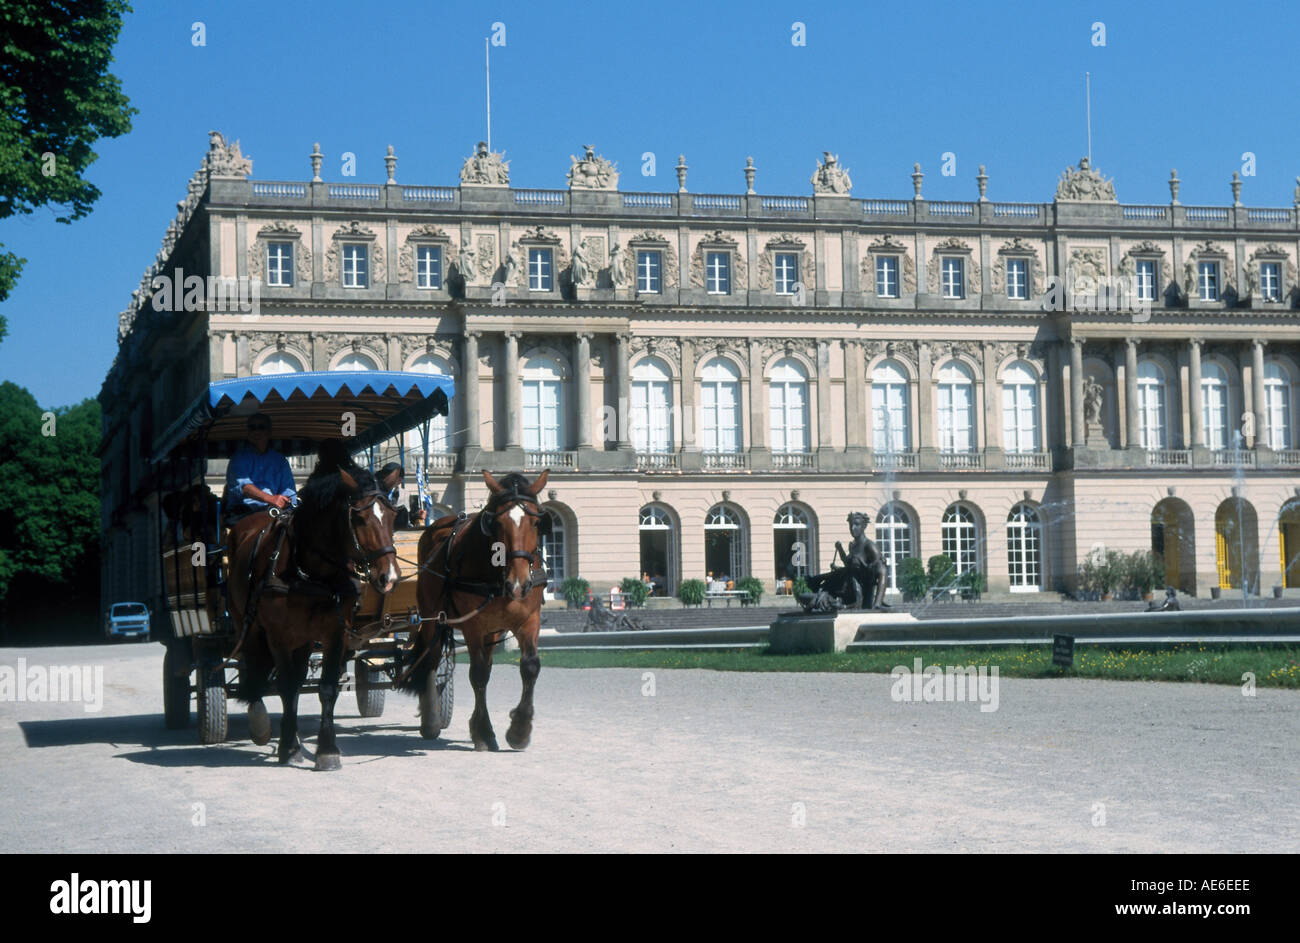 Horsedrawn carriage in front of castle, Herrenchiemsee Castle, Herreninsel, Bavaria, Germany Stock Photo